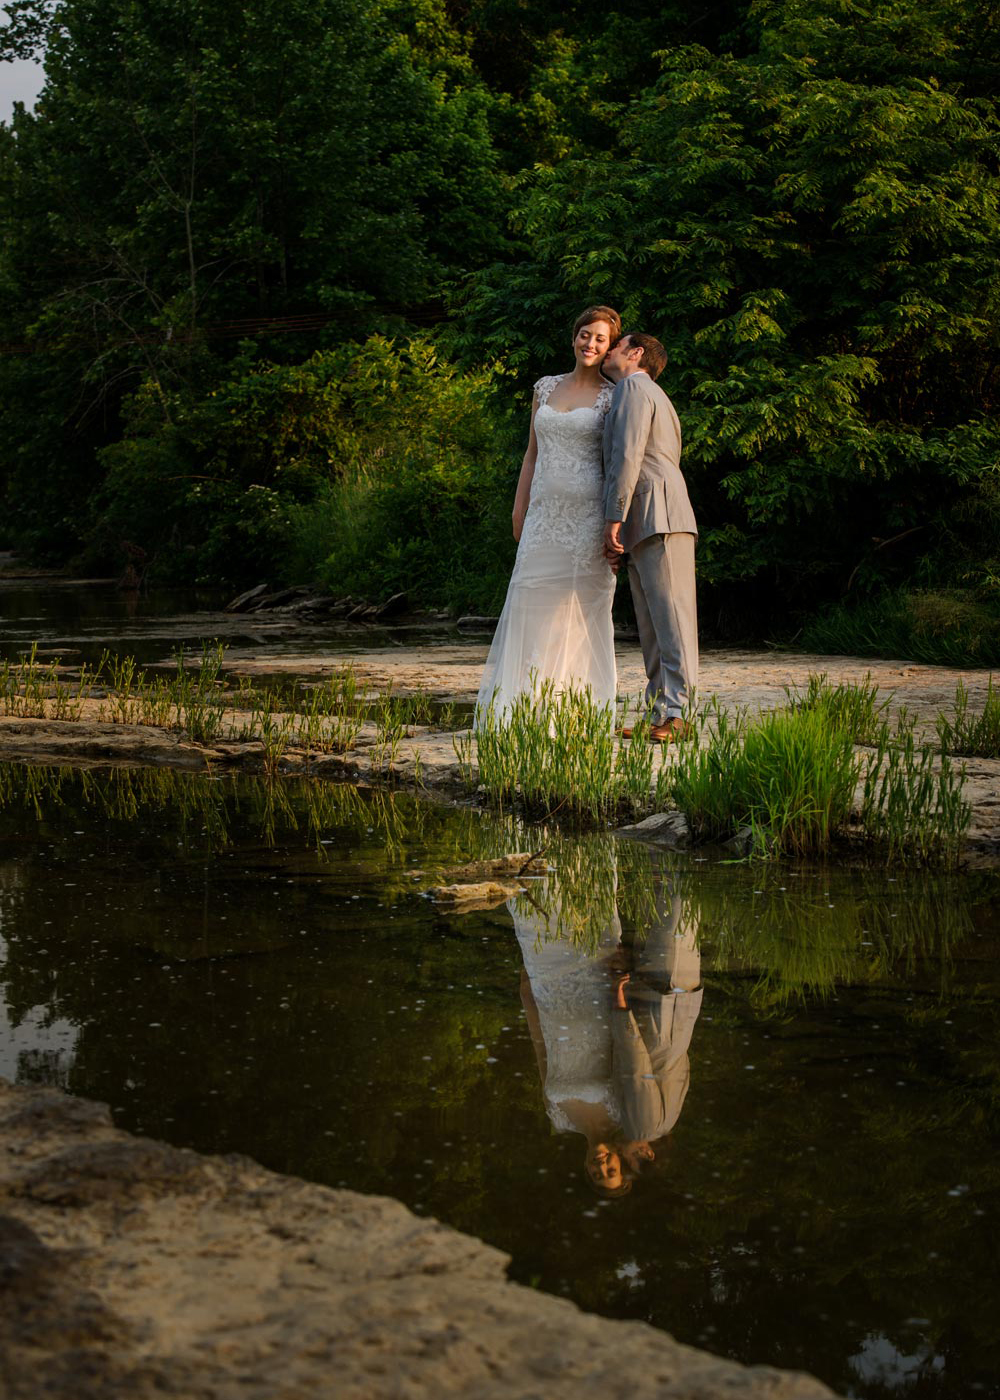 wedding_photographer_lexington_ky_studio_walz186.jpg